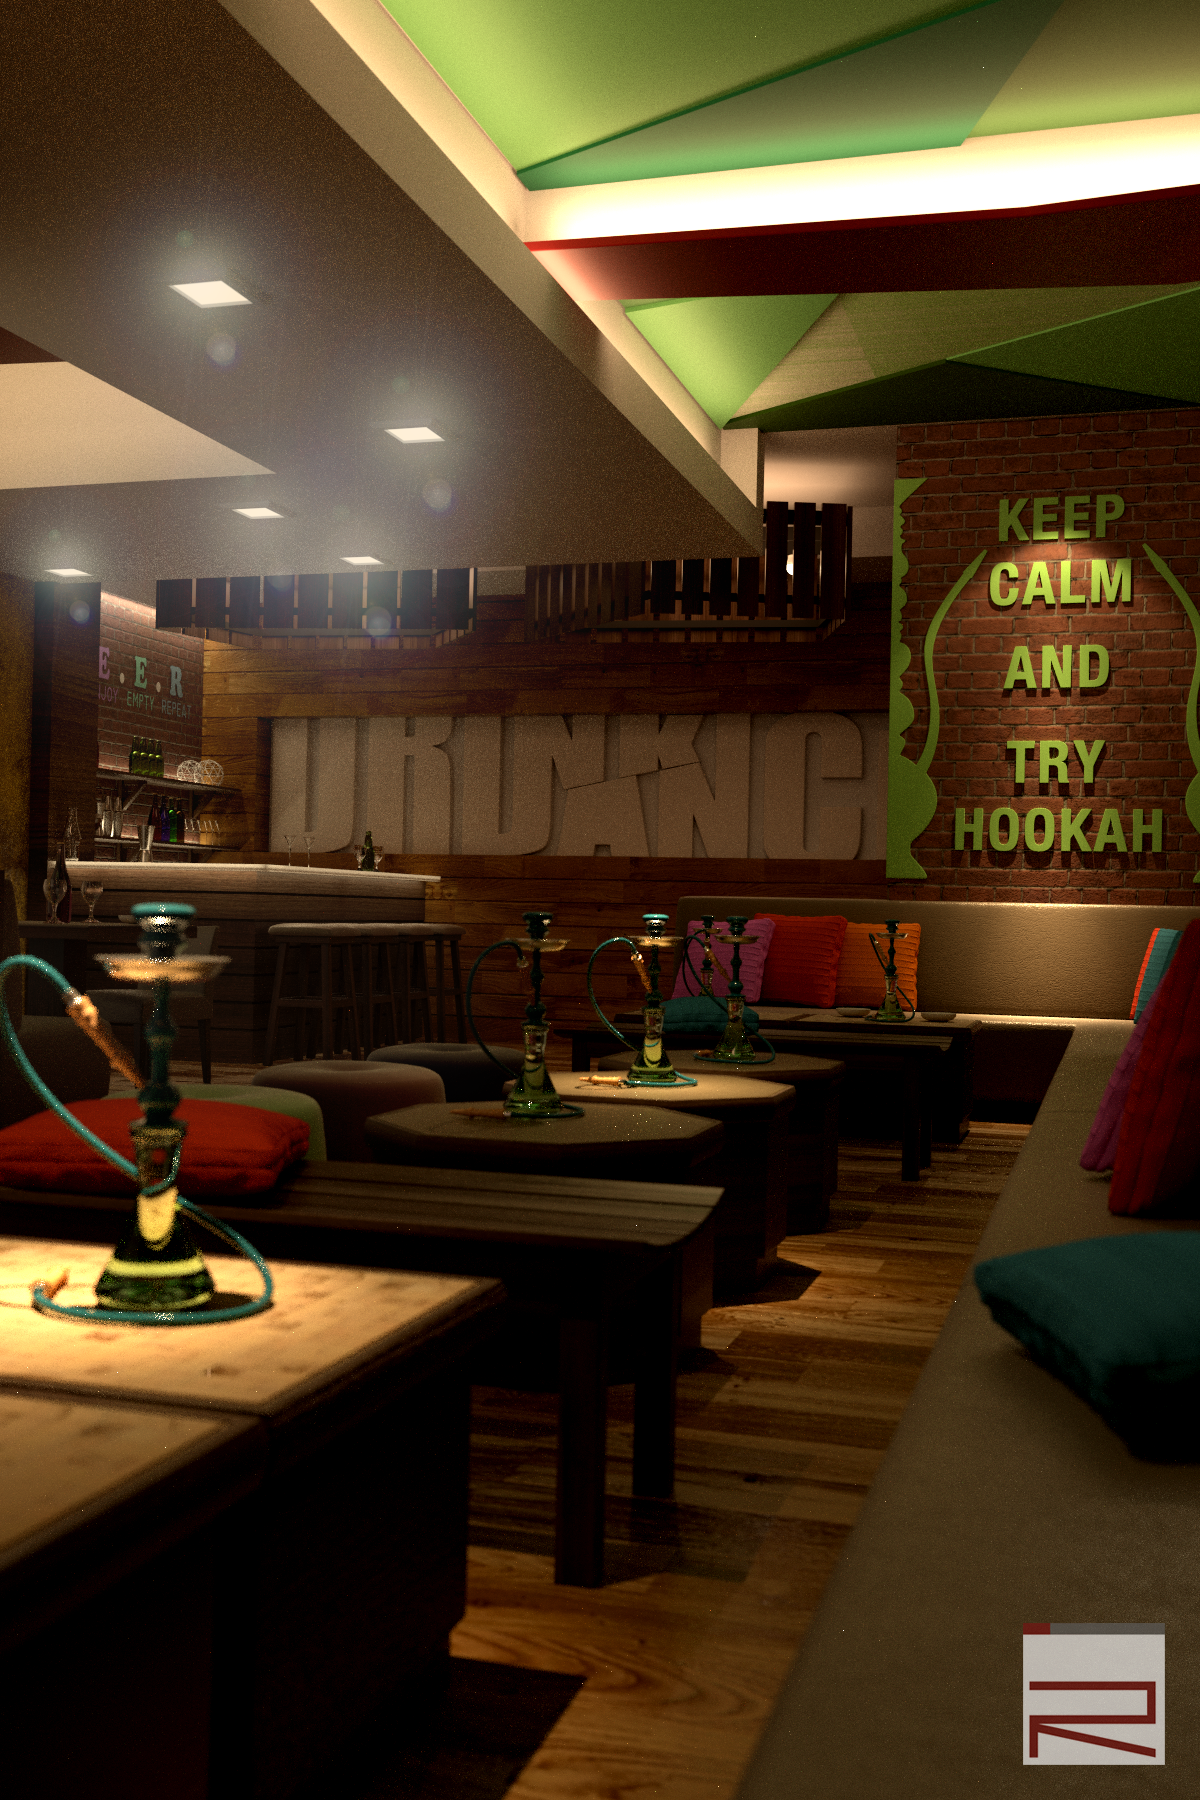 Our latest project interior of hookah lounge bar in for Raumgestaltung cafe